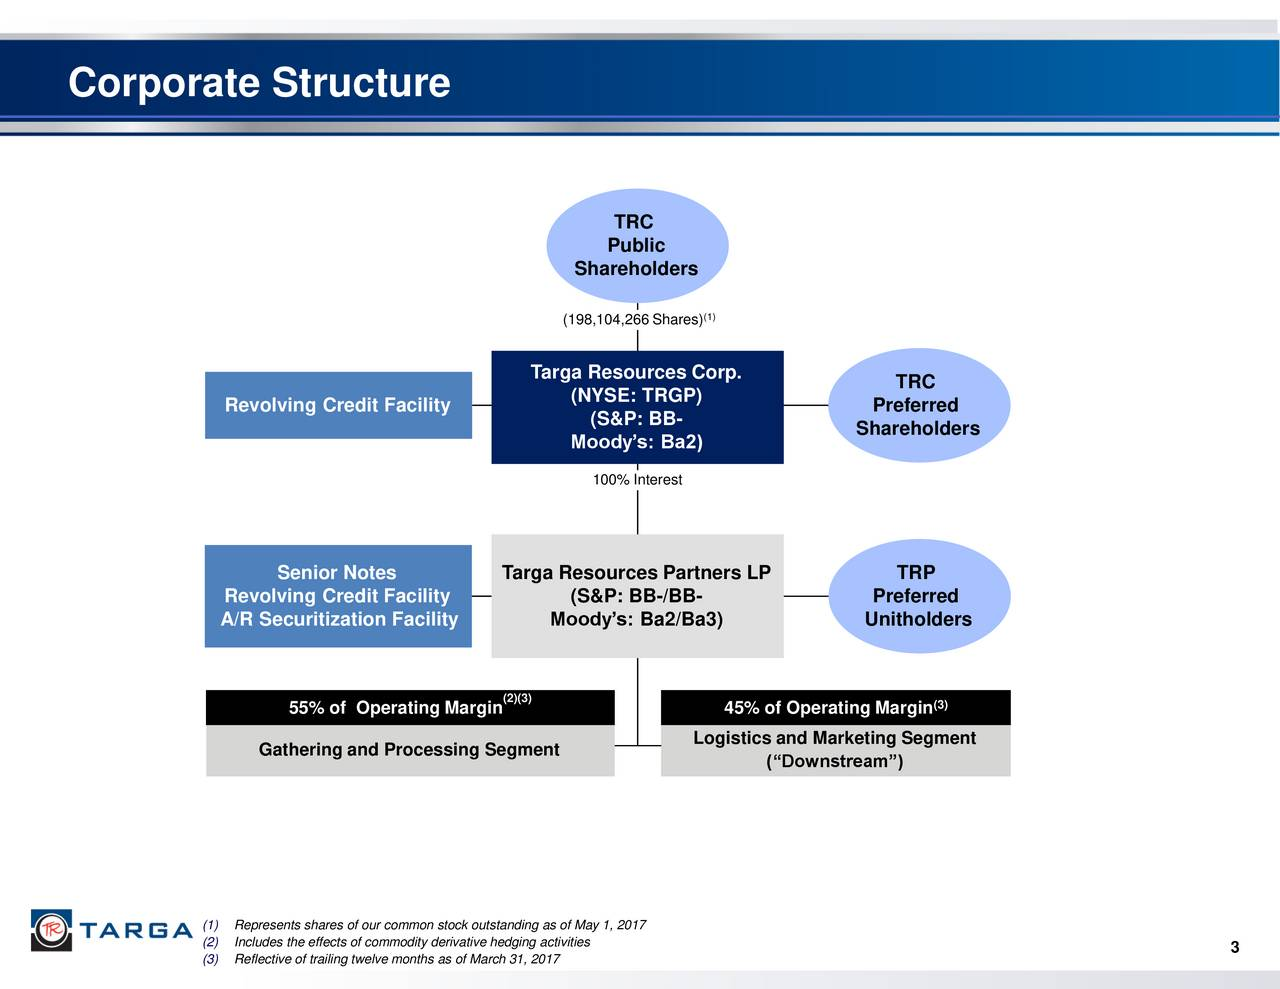 TRC Public Shareholders (198,104,266 Shares) Targa Resources Corp. TRC Revolving Credit Facility (NYSE: TRGP) Preferred (S&P: BB- Moodys: Ba2) Shareholders 100% Interest Senior Notes Targa Resources Partners LP TRP Revolving Credit Facility (S&P: BB-/BB- Preferred A/R Securitization Facility Moodys: Ba2/Ba3) Unitholders 55% of Operating Margin (2)(3) 45% of Operating Margin (3) Logistics and Marketing Segment Gathering and Processing Segment (Downstream) (1)Represents shares of our common stock outstanding as of May 1, 2017 (2)Includes the effects of commodity derivative hedging activities 3 (3)Reflective of trailing twelve months as of March 31, 2017